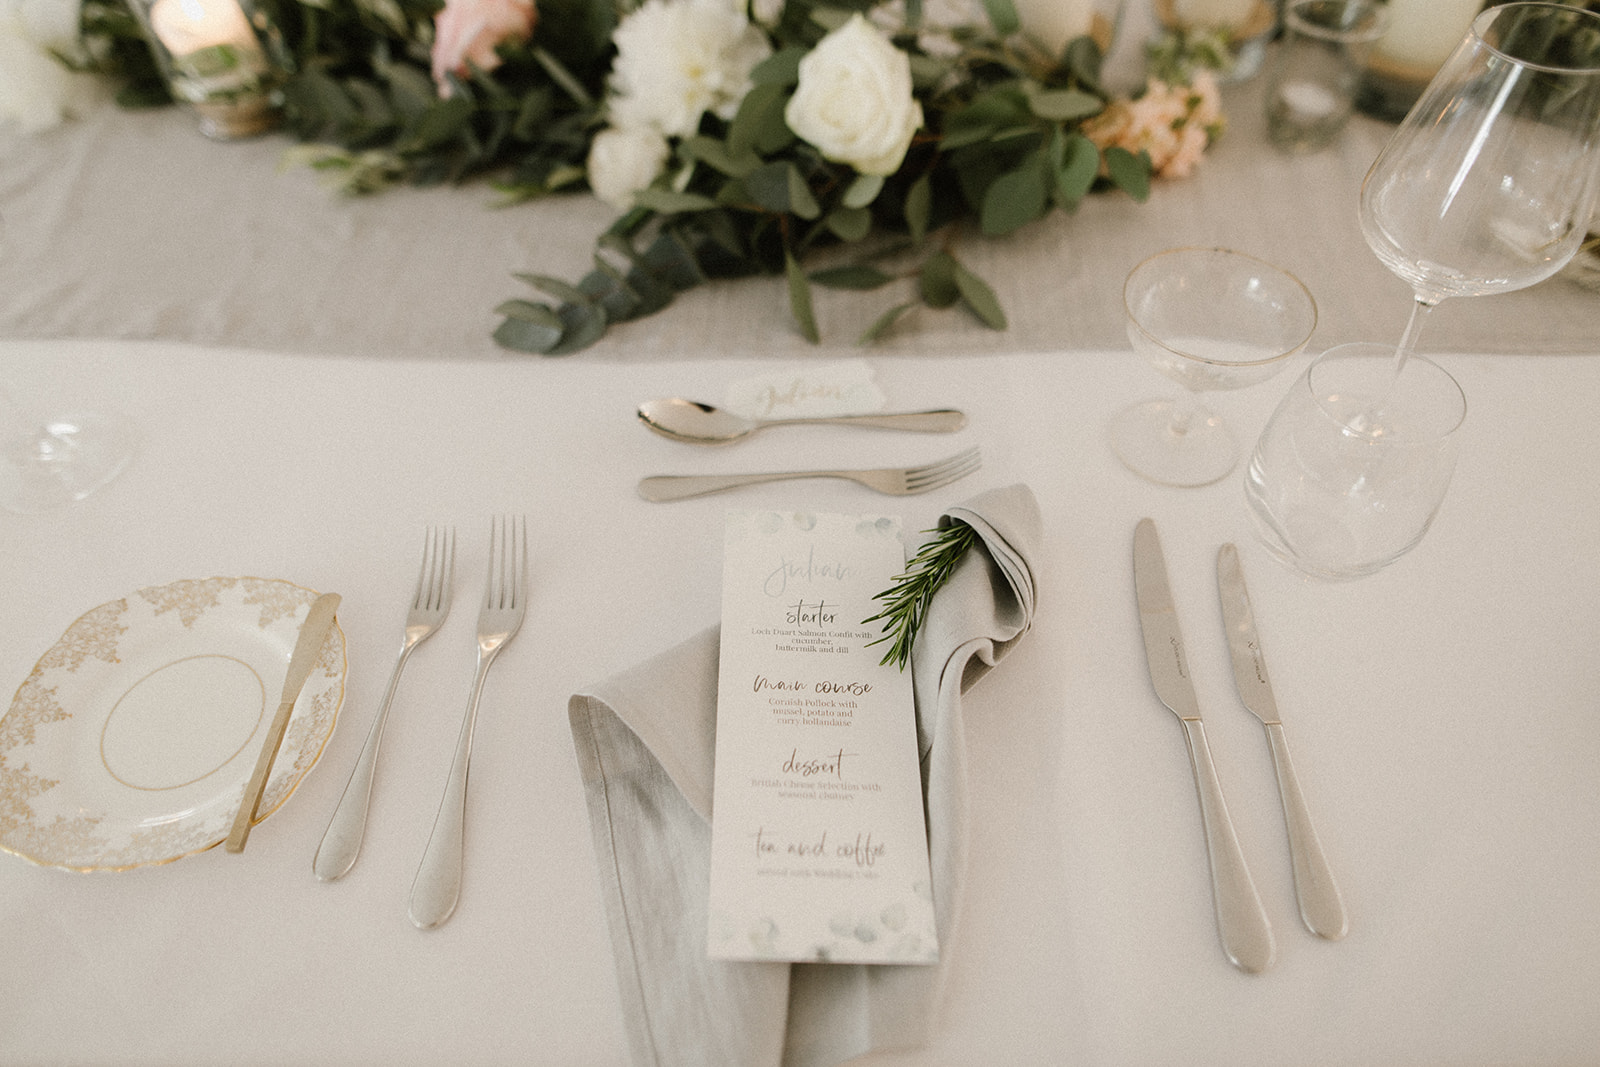 Grey napkins and rosemary